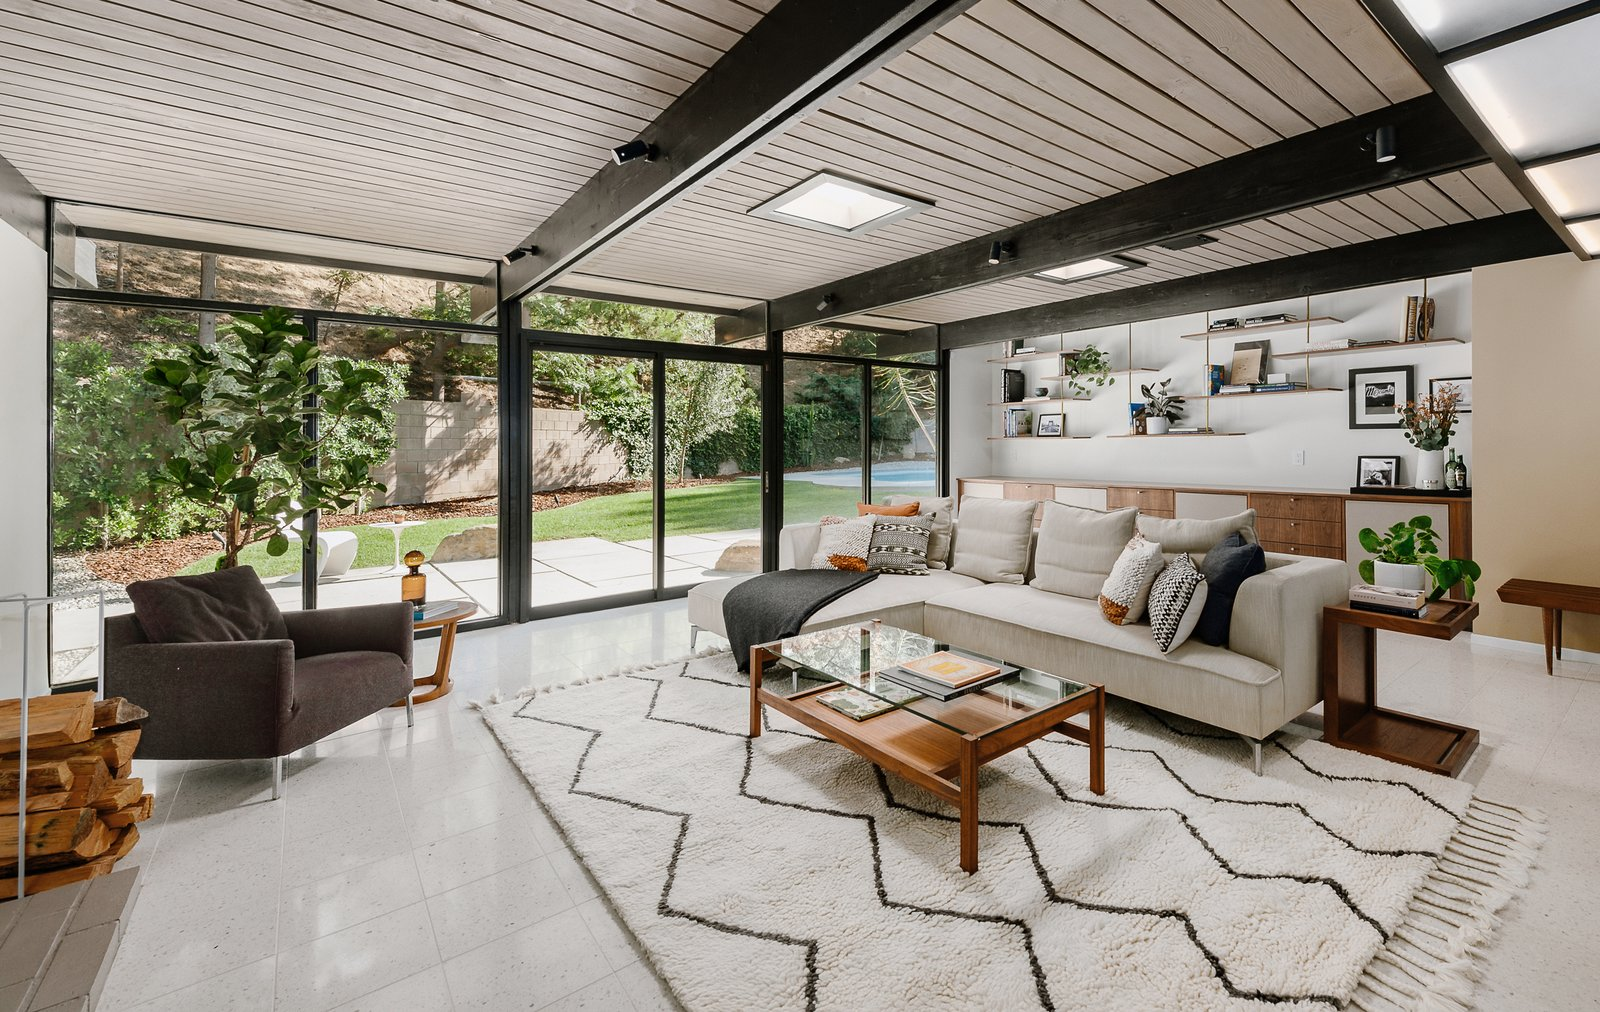 Living Room, Bench, Bookcase, Coffee Tables, Rug Floor, Terrazzo Floor, Ceiling Lighting, Chair, End Tables, Storage, and Sofa The open-plan living room features a wall of glass with sliding doors that lead out to a pool.     Photo 2 of 9 in Picture Yourself in This Historic L.A. Midcentury For $2.6M